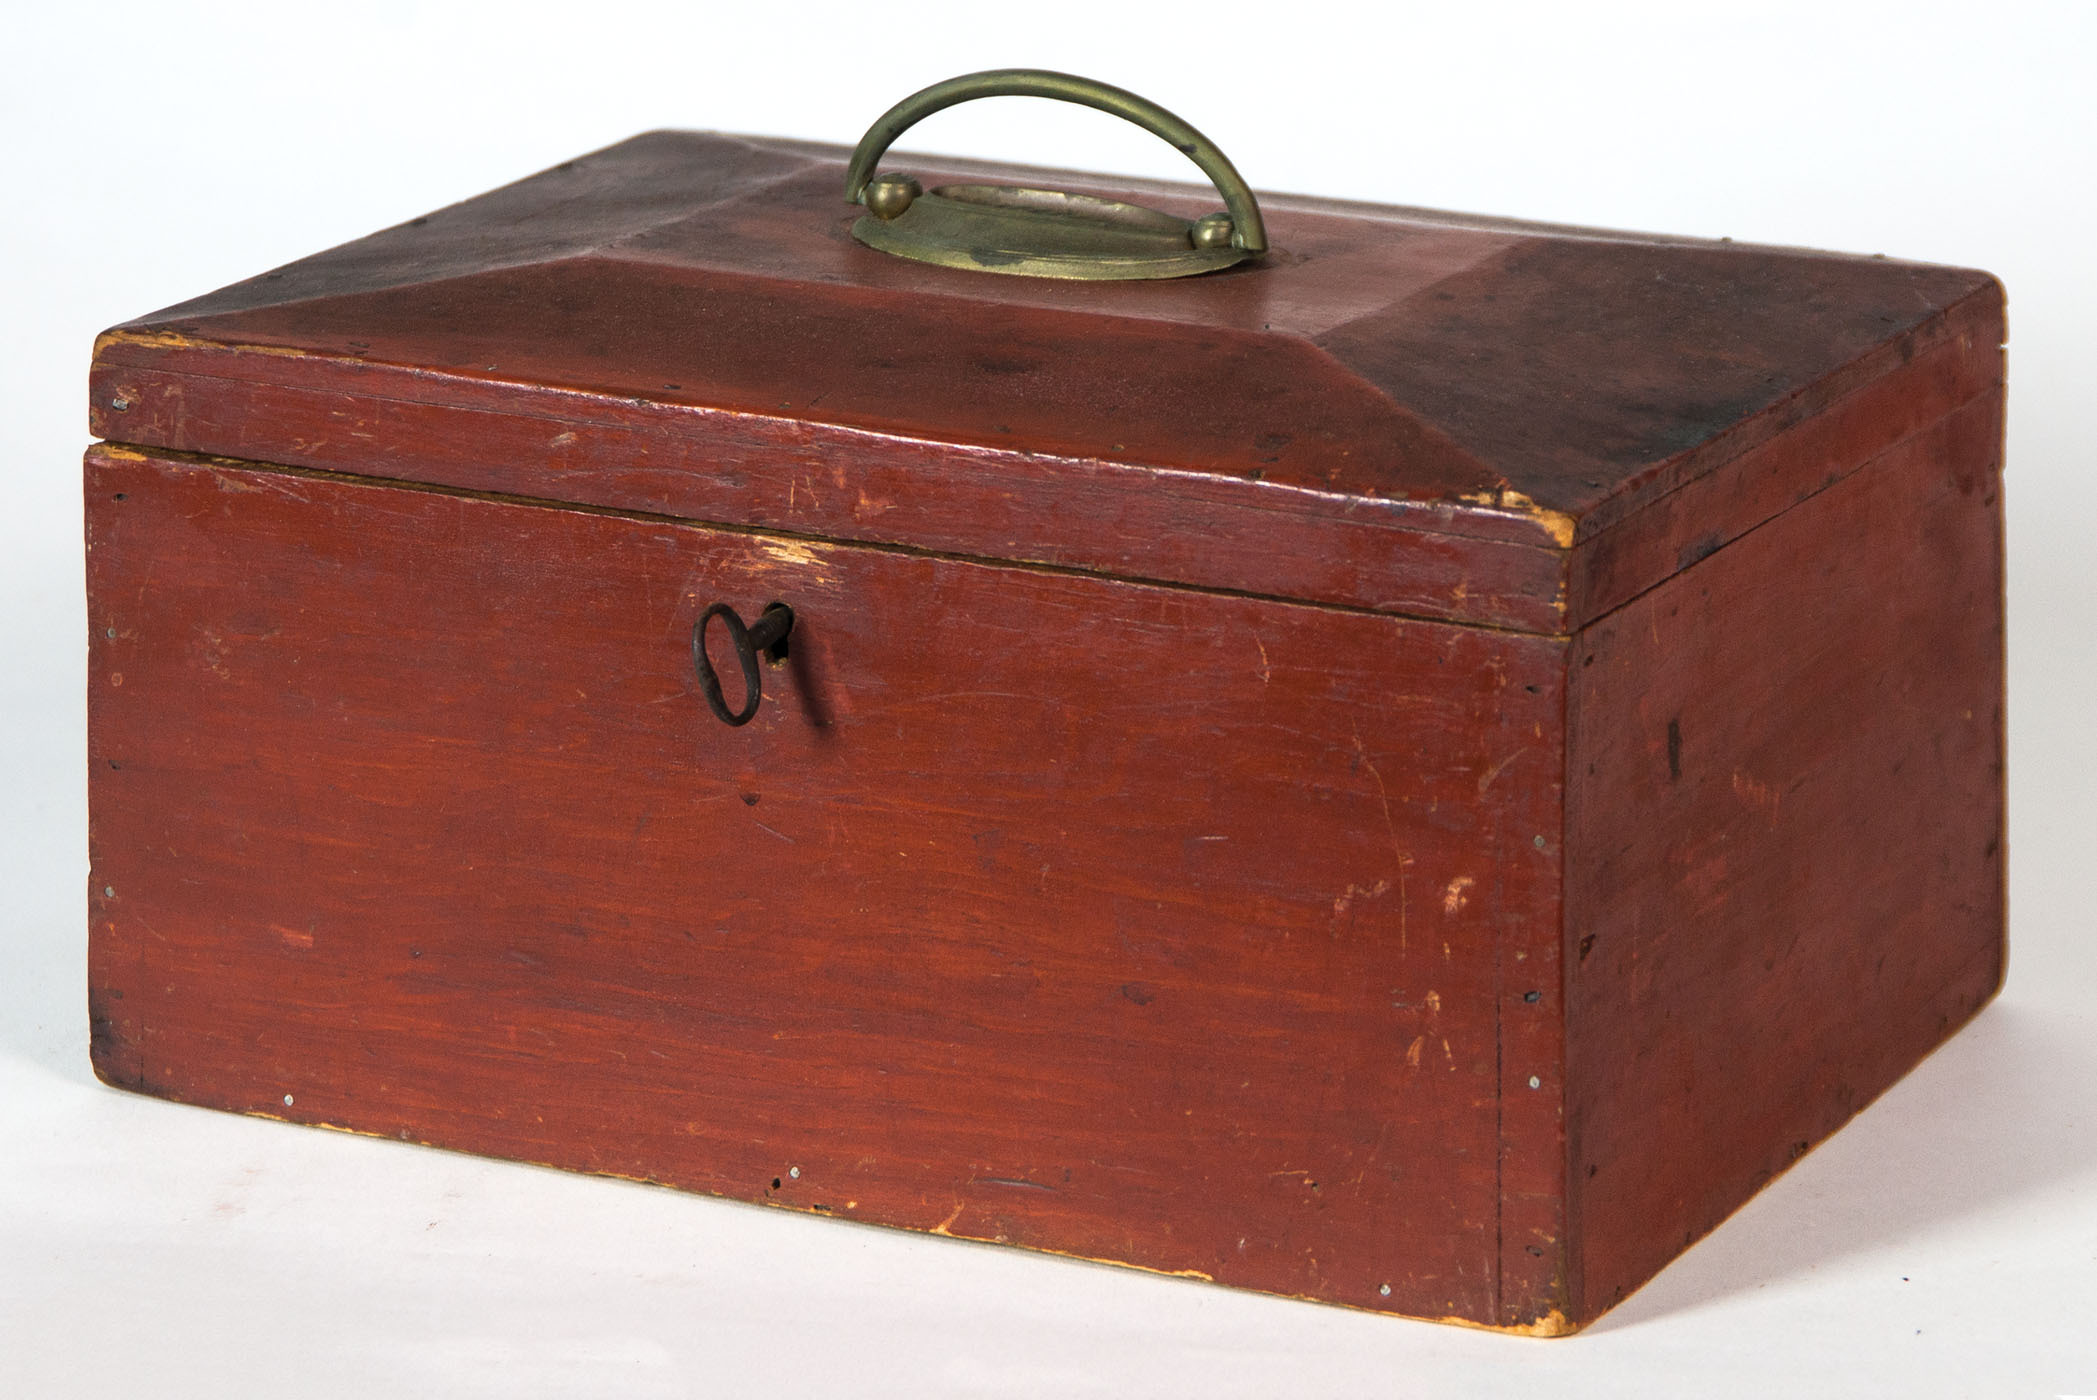 Lot 116B 19th C. Hingham Storage Box & Willis Henry Auctions Inc.